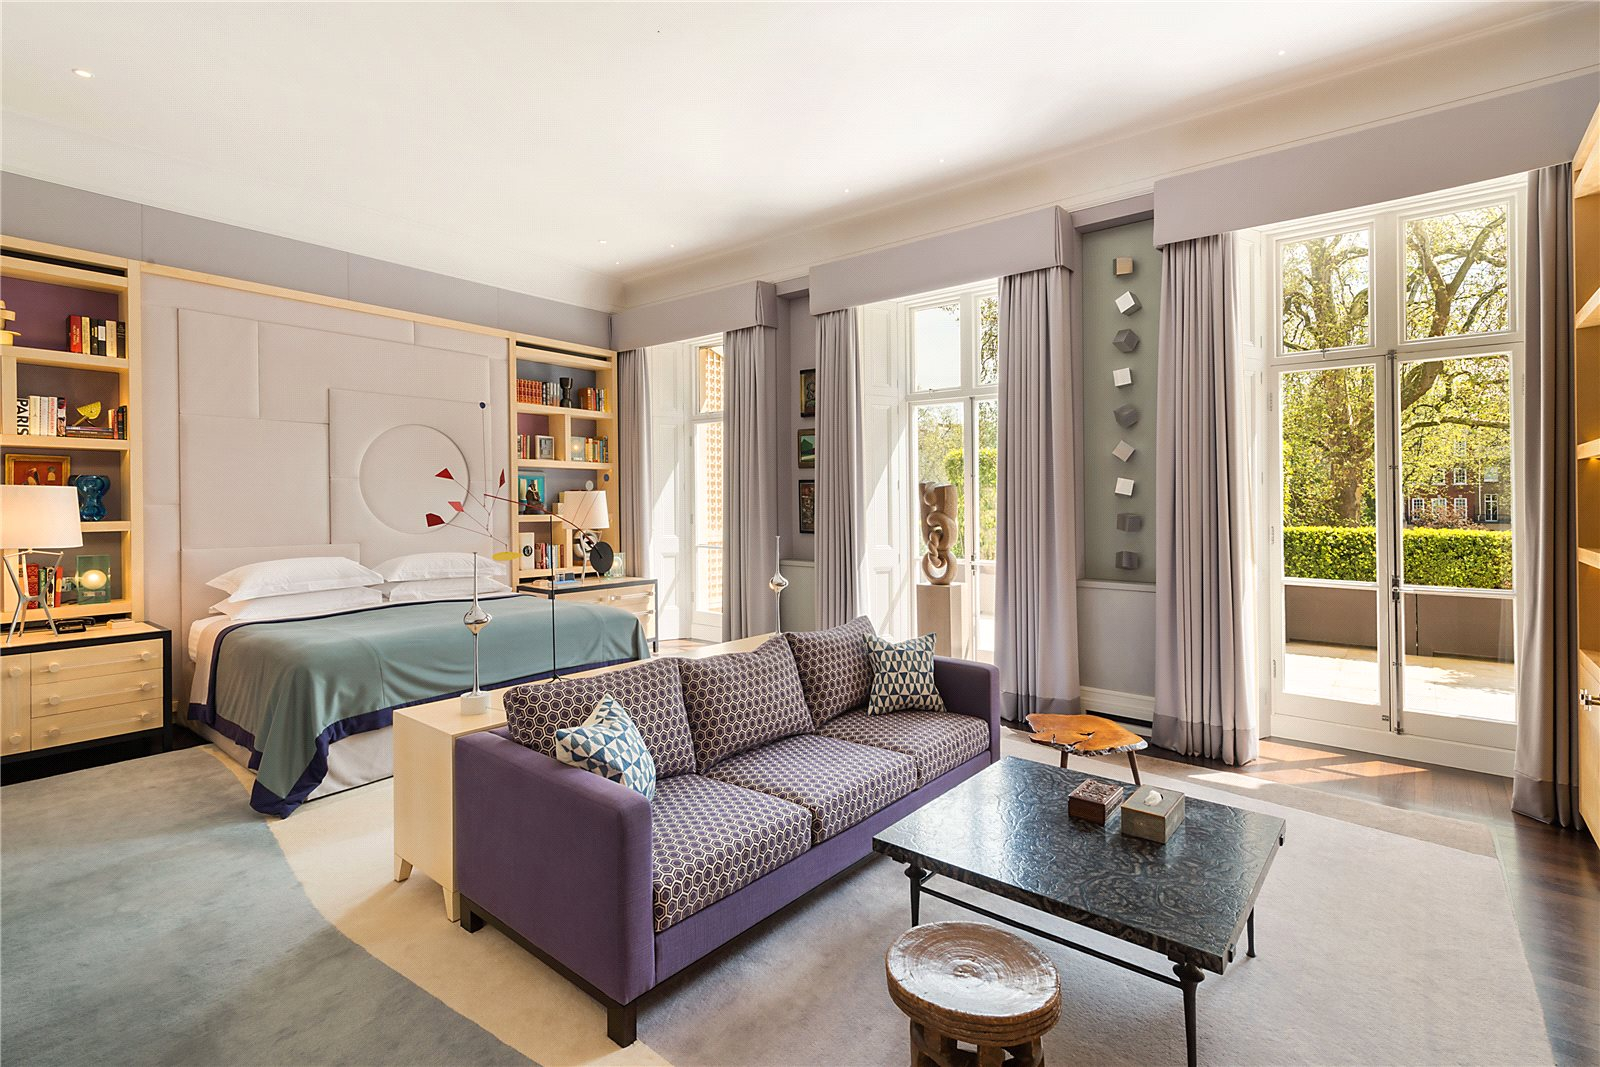 Apartments residences for sale at cork street mayfair london w1s - London And Vicinity Luxury Real Estate For Sale Christie S International Real Estate